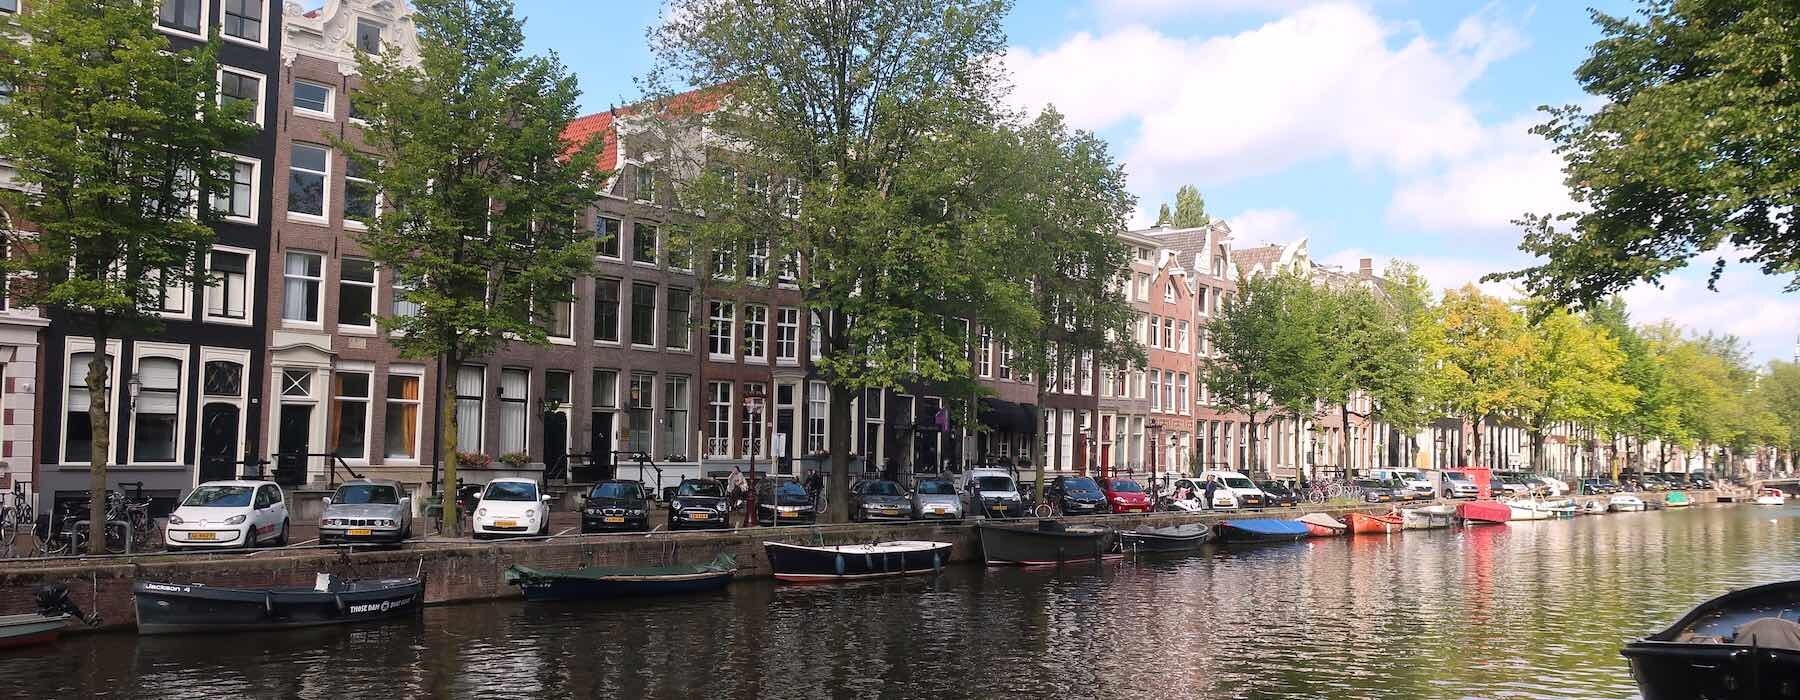 Best Amsterdam city tours